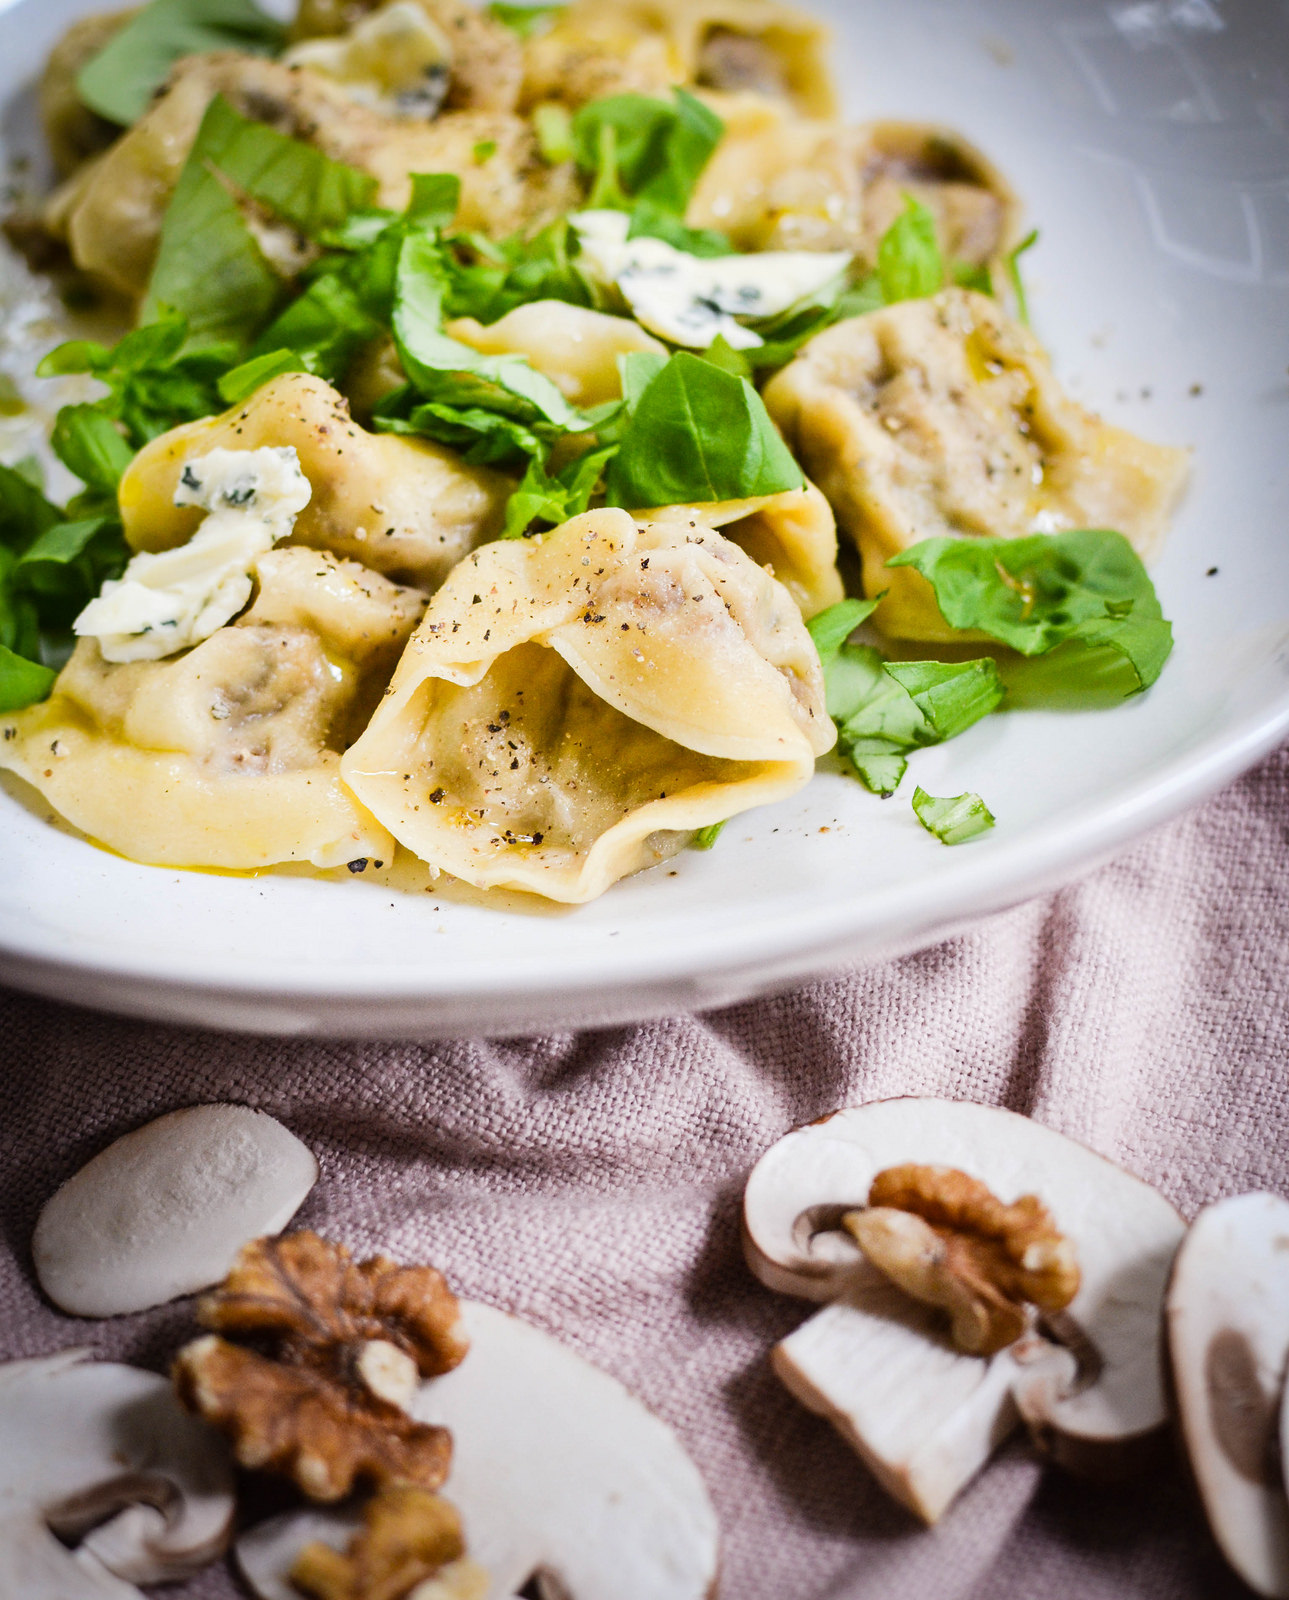 Castello Creamy Blue Tortellini with Mushrooms and Walnuts